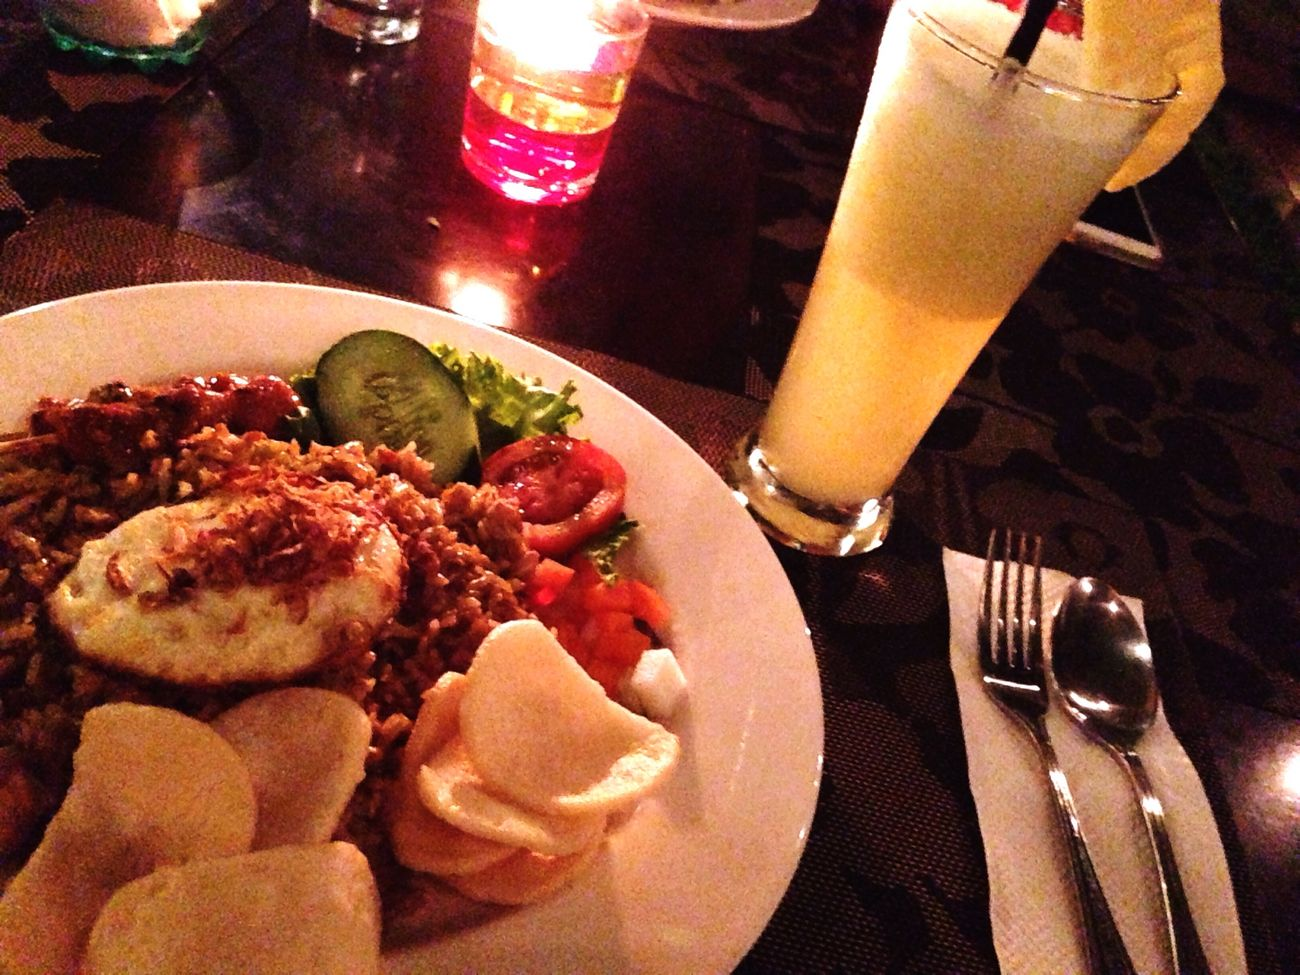 Bali Seminyak Dinner Nasigoreng Pineapplejuice Juice Pineapple